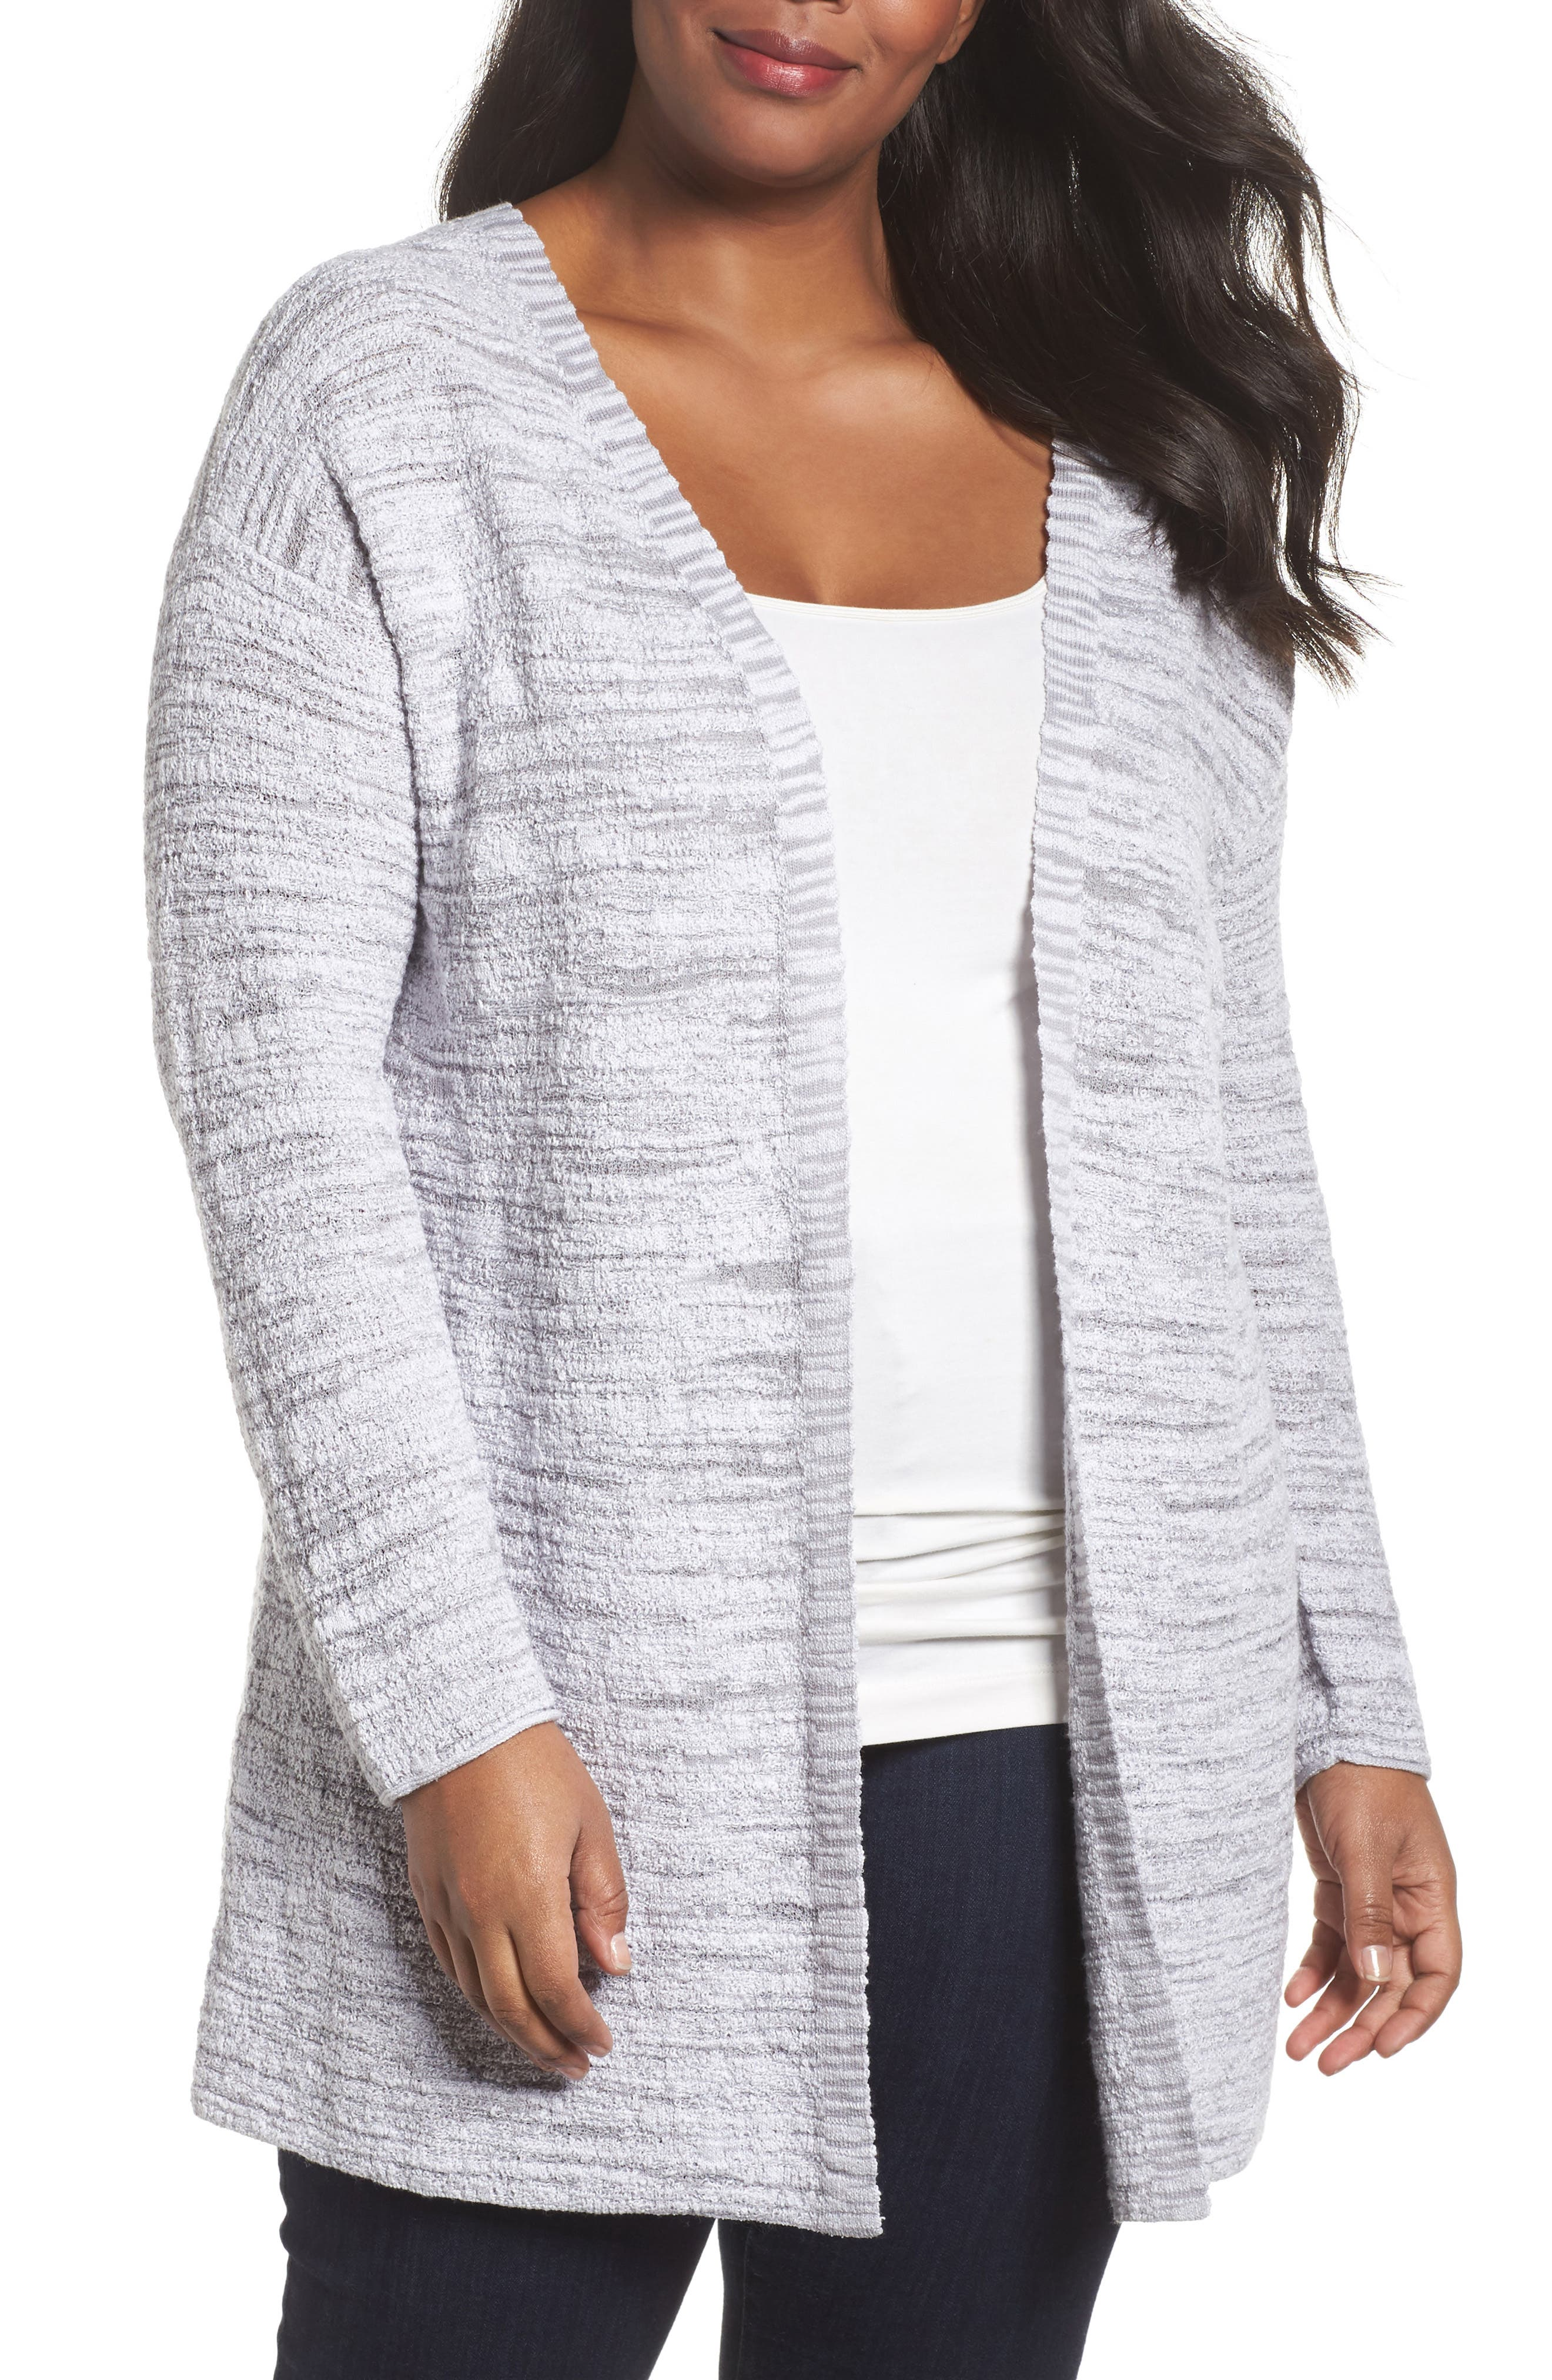 Lace It Back Cardigan,                             Main thumbnail 1, color,                             Icy Grey